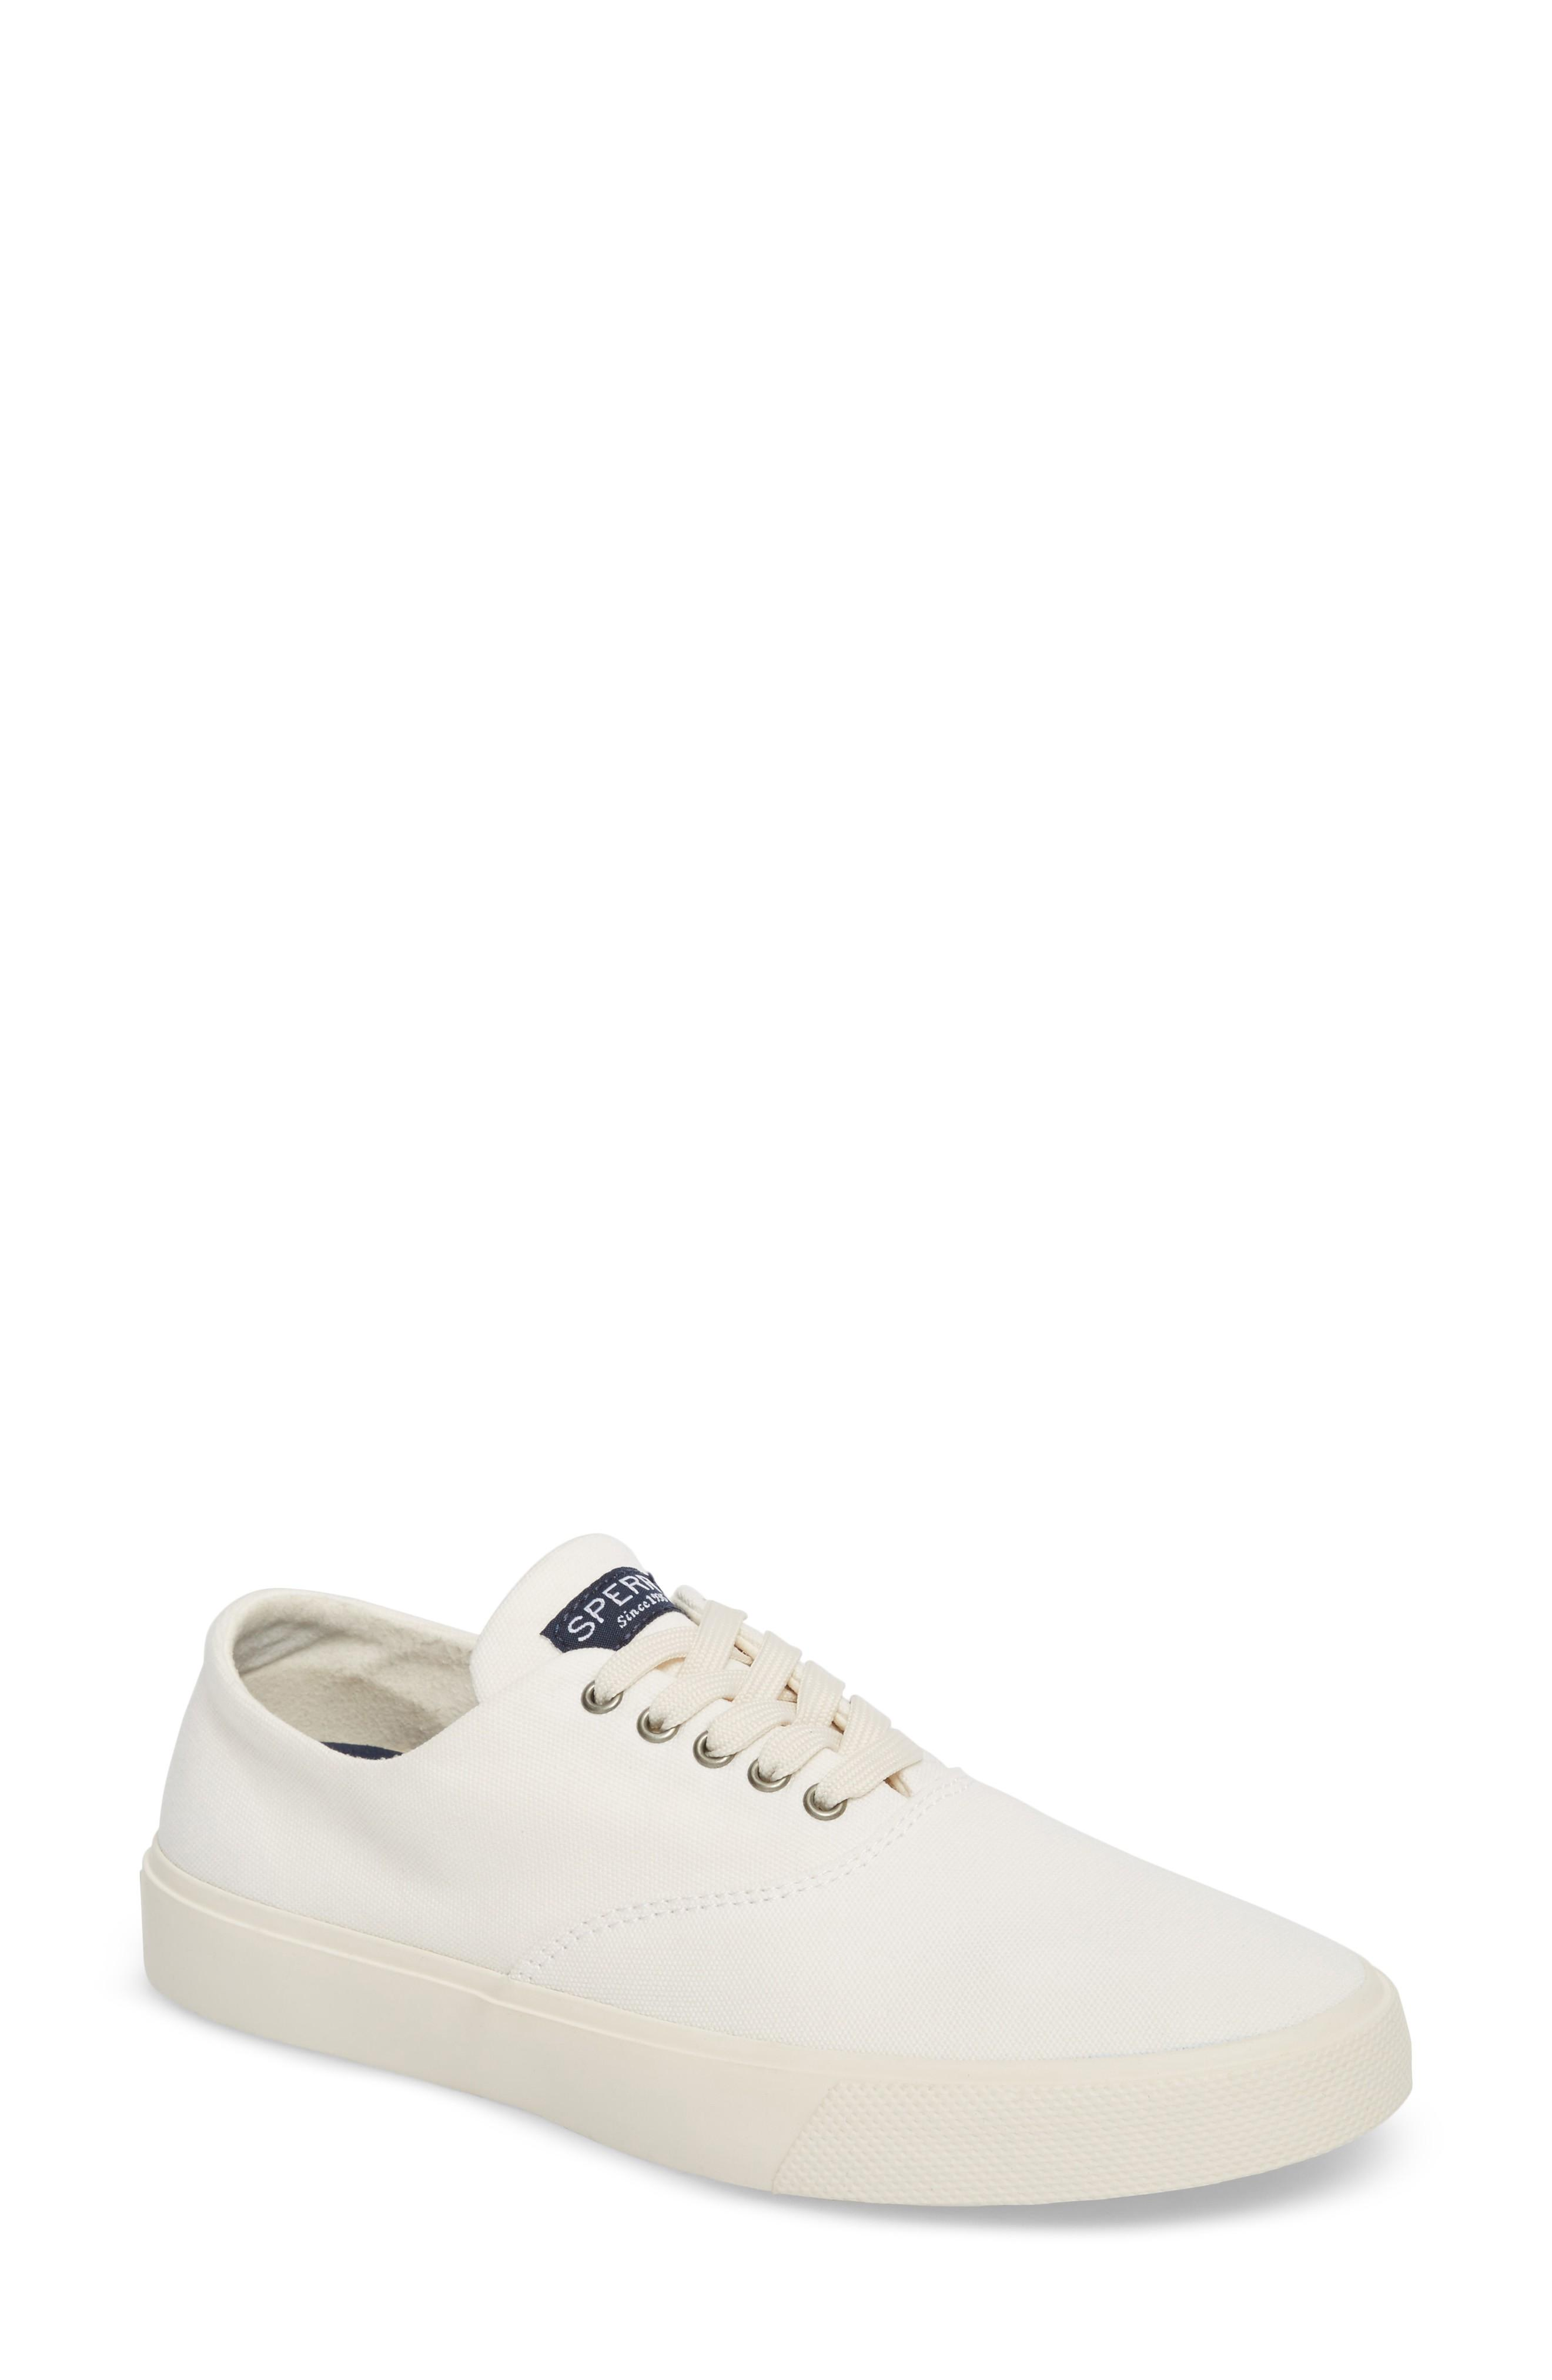 Sperry Captain's Cvo Sneaker In White Fabric